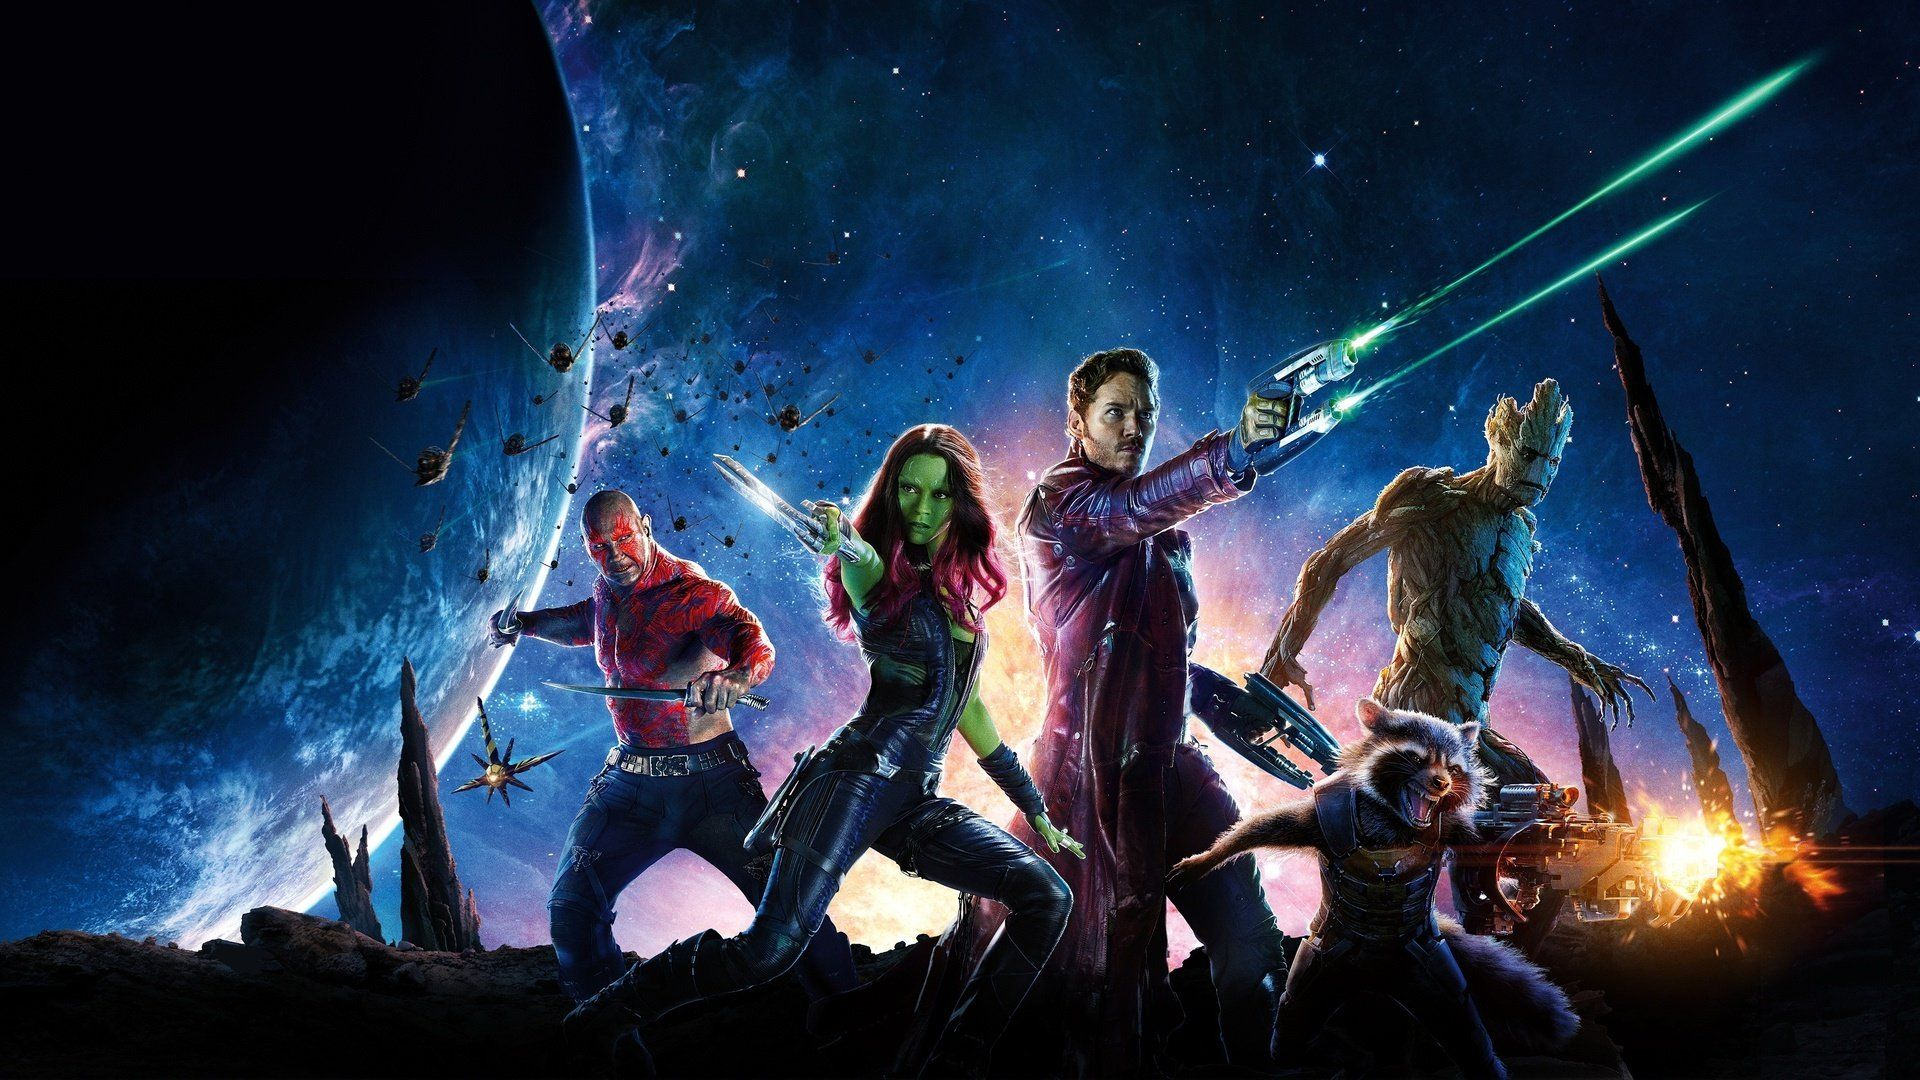 Guardians of the Galaxy wallpaper.